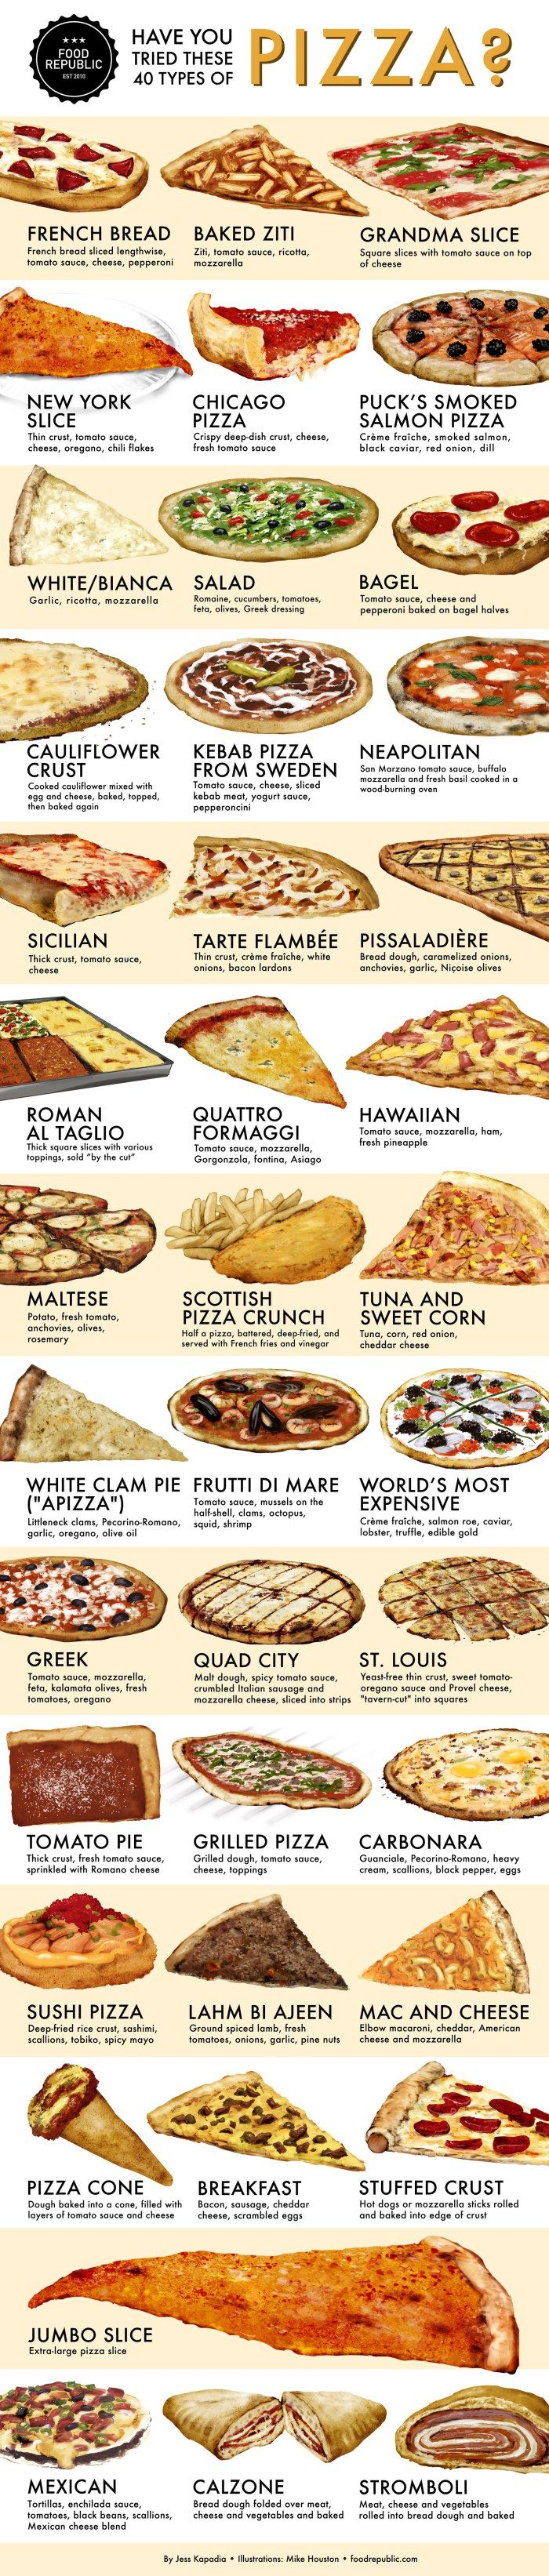 Have You Tried These 40 Types of Pizza?